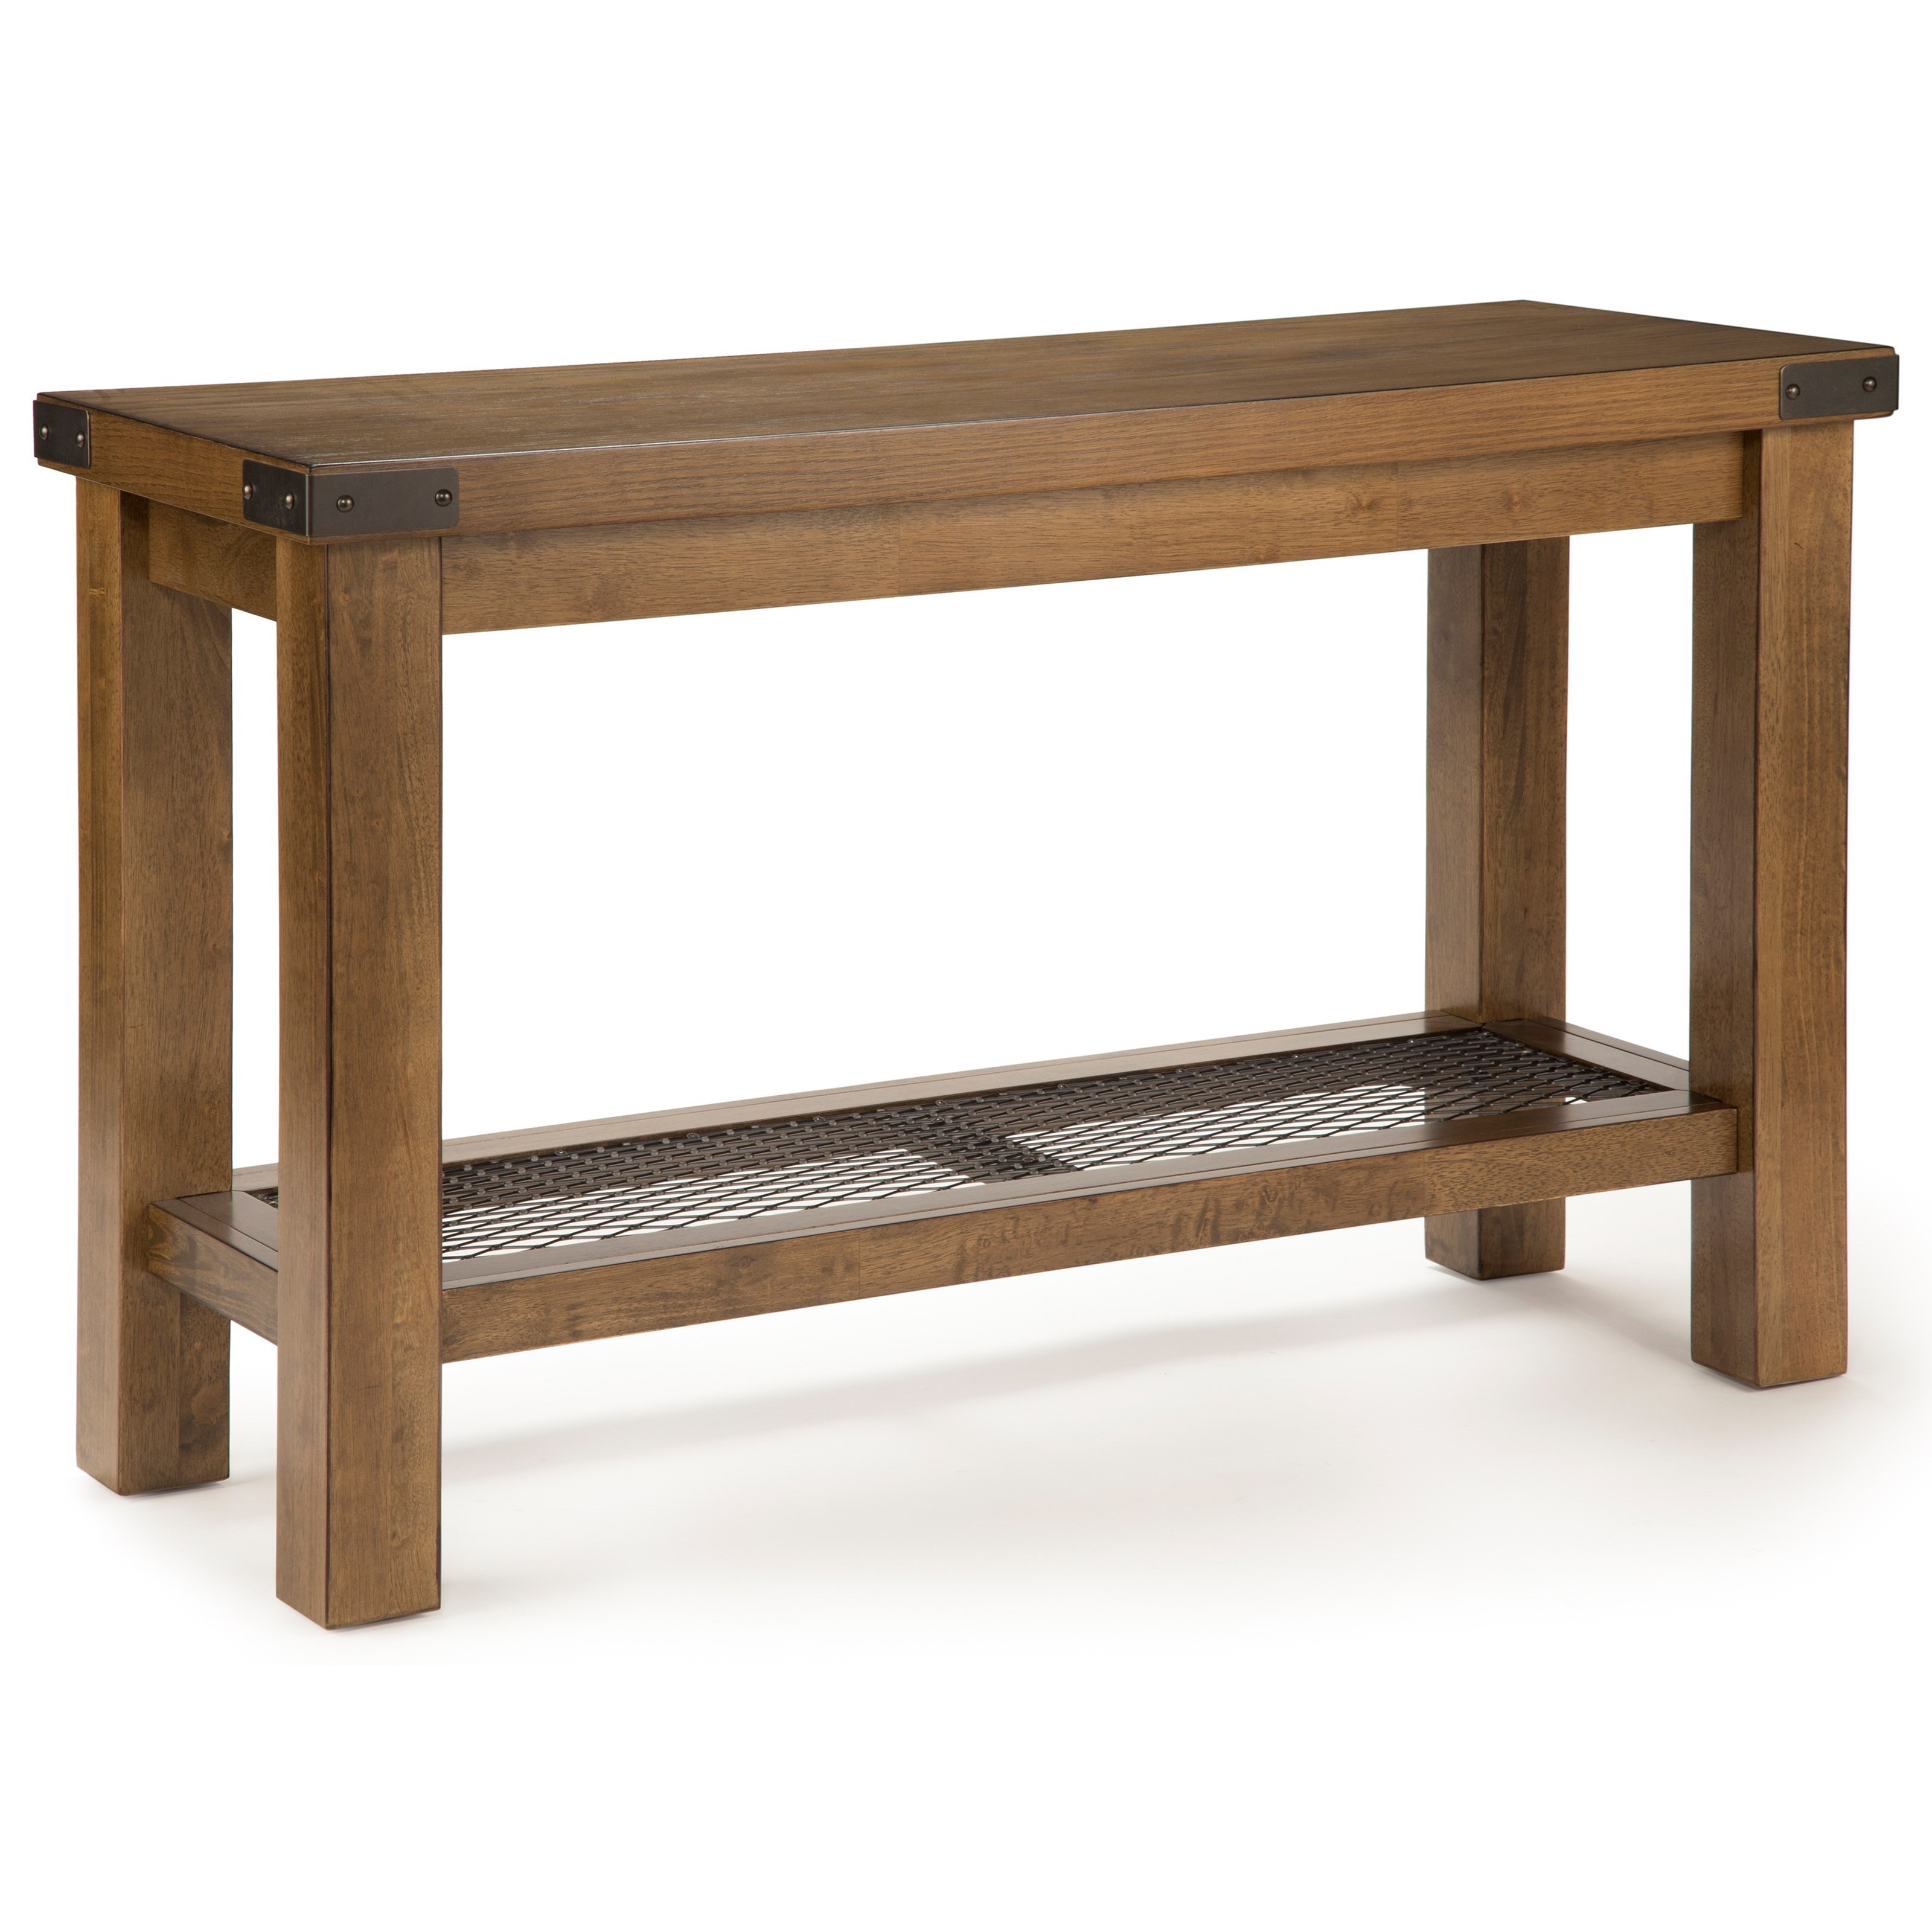 Hailee Sofa Table by Steve Silver at Walker's Furniture